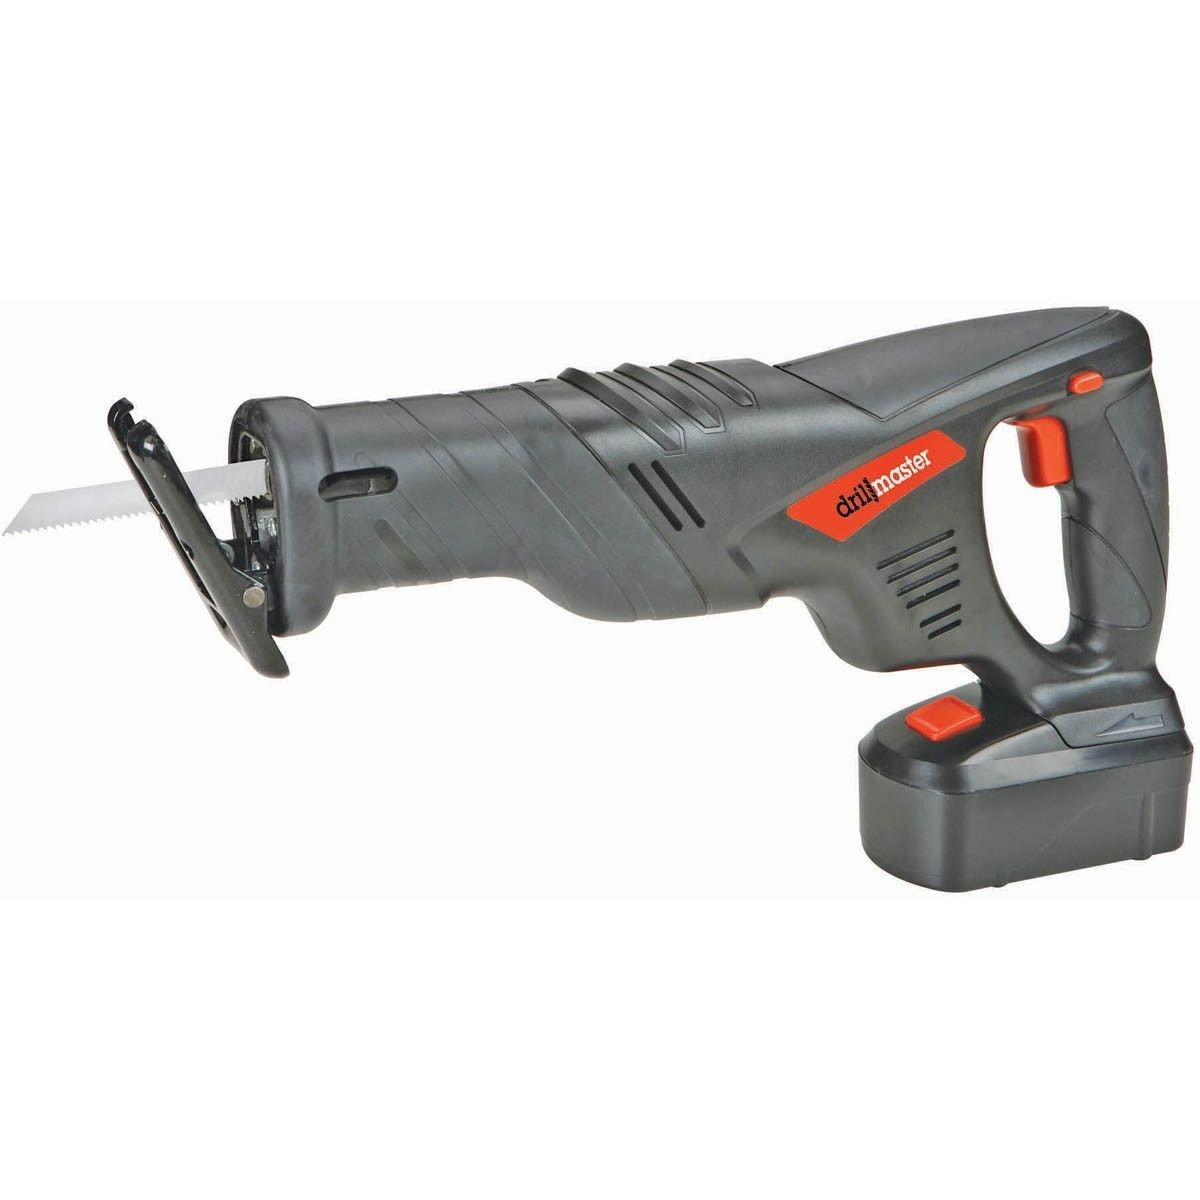 Harbor Freight Cordless Reciprocating Saw Cordless Reciprocating Saw Reciprocating Saw Cool Tools